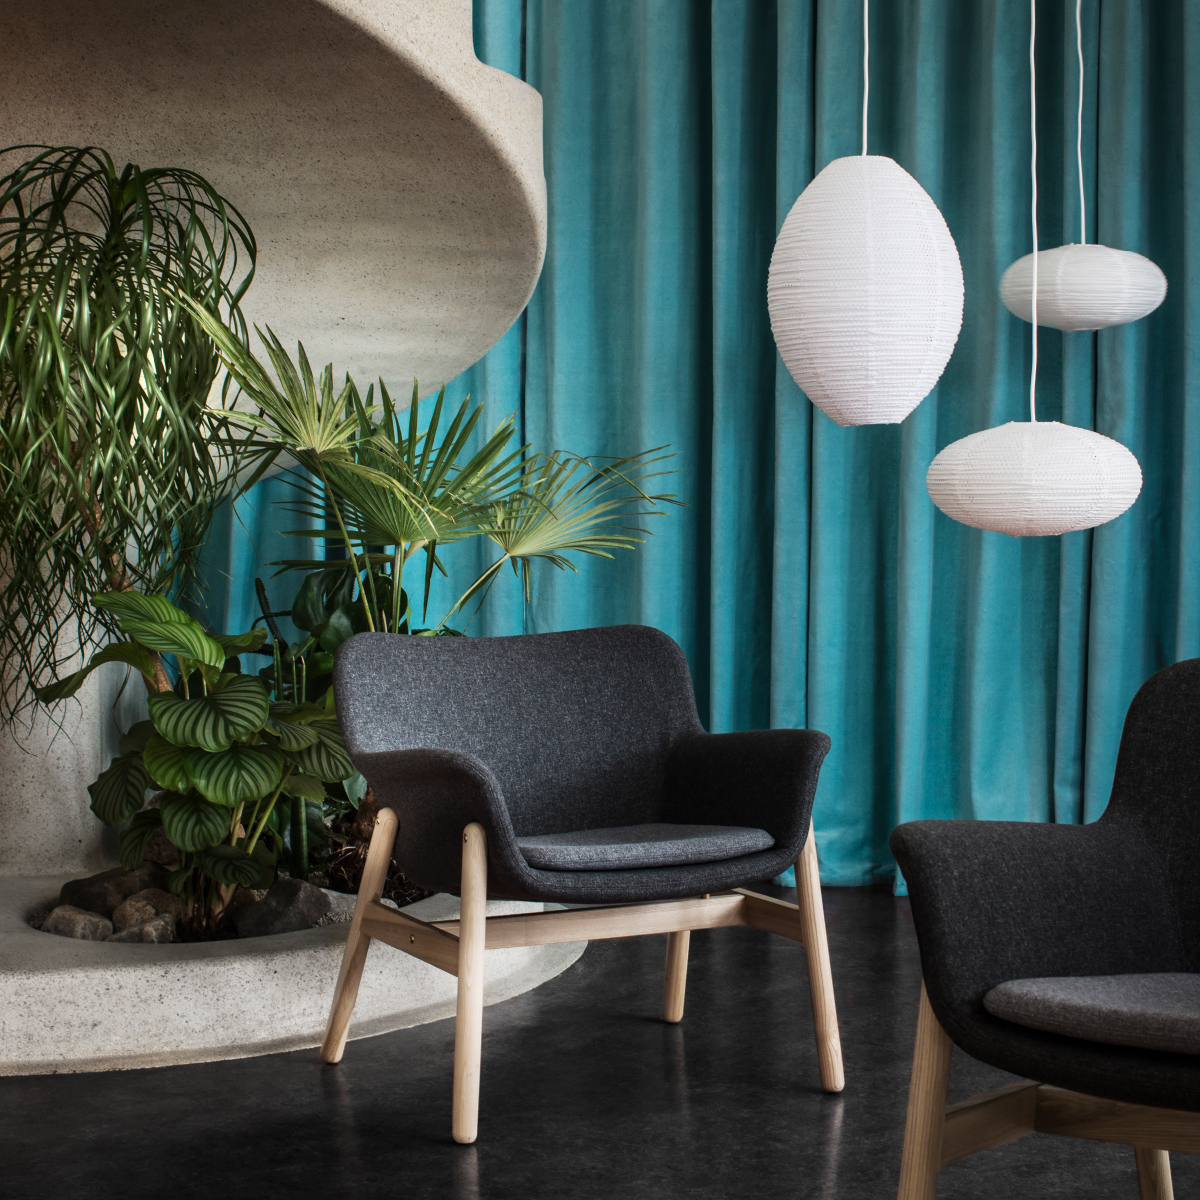 An ergonomic designed armchair with a grey cover and clear lacquered solid ash legs, shown in front of turquoise drapes and three white rice paper pendant lamps.